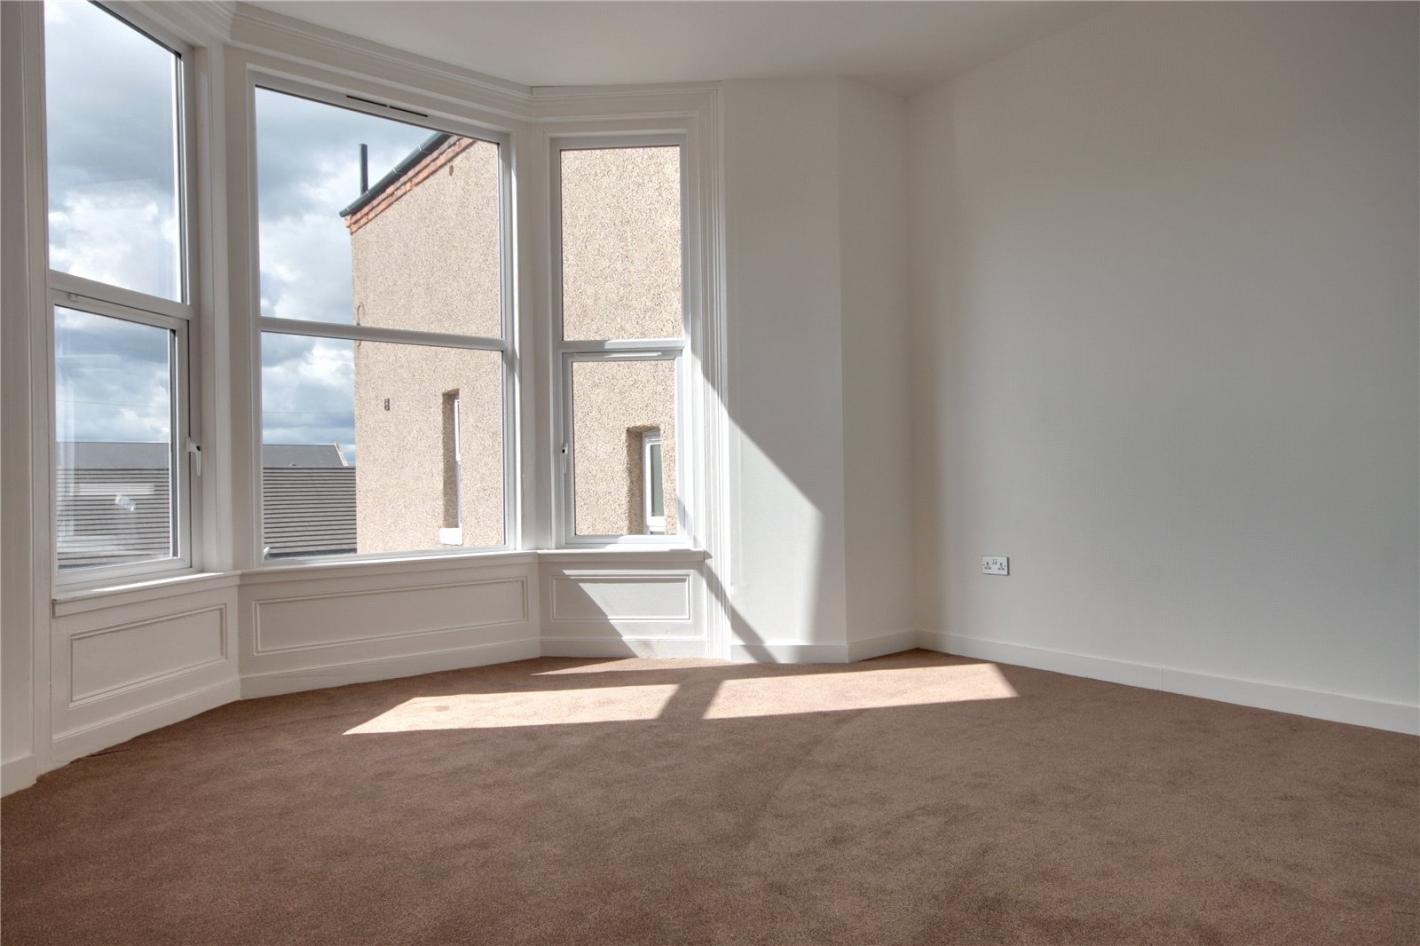 white walls, brown carpet, triple window